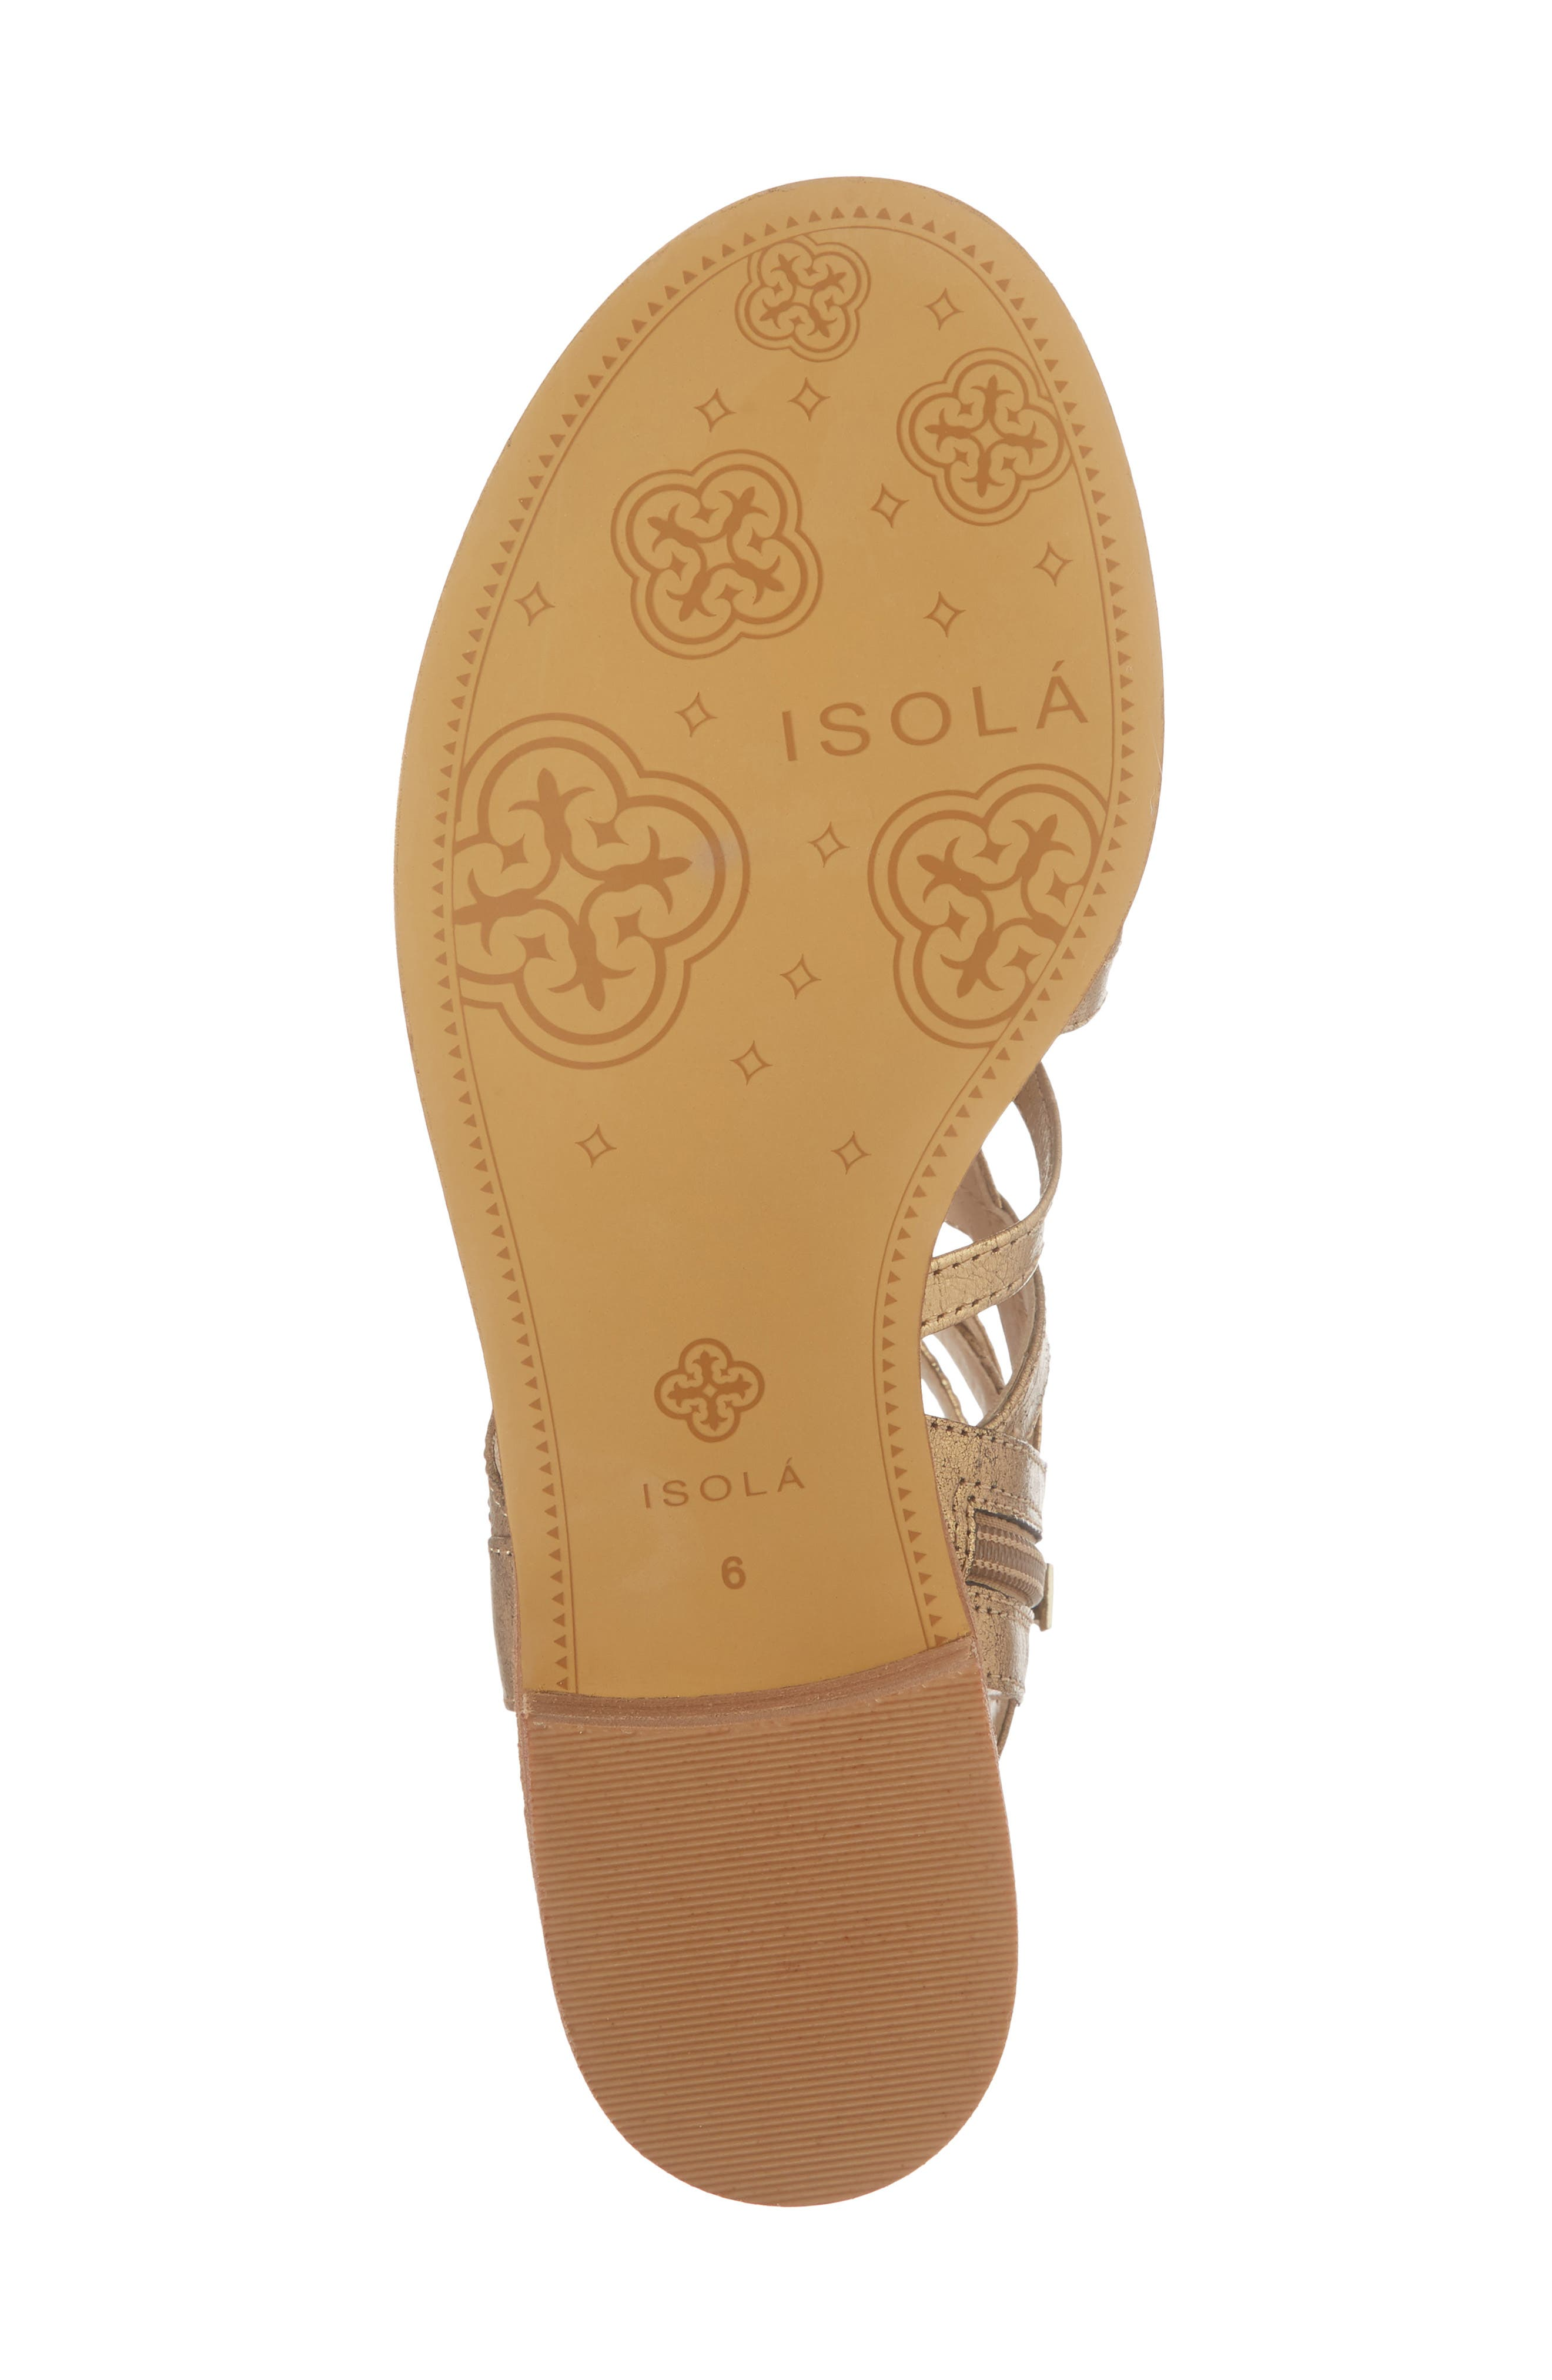 Genesis Cage Sandal,                             Alternate thumbnail 6, color,                             OLD GOLD LEATHER